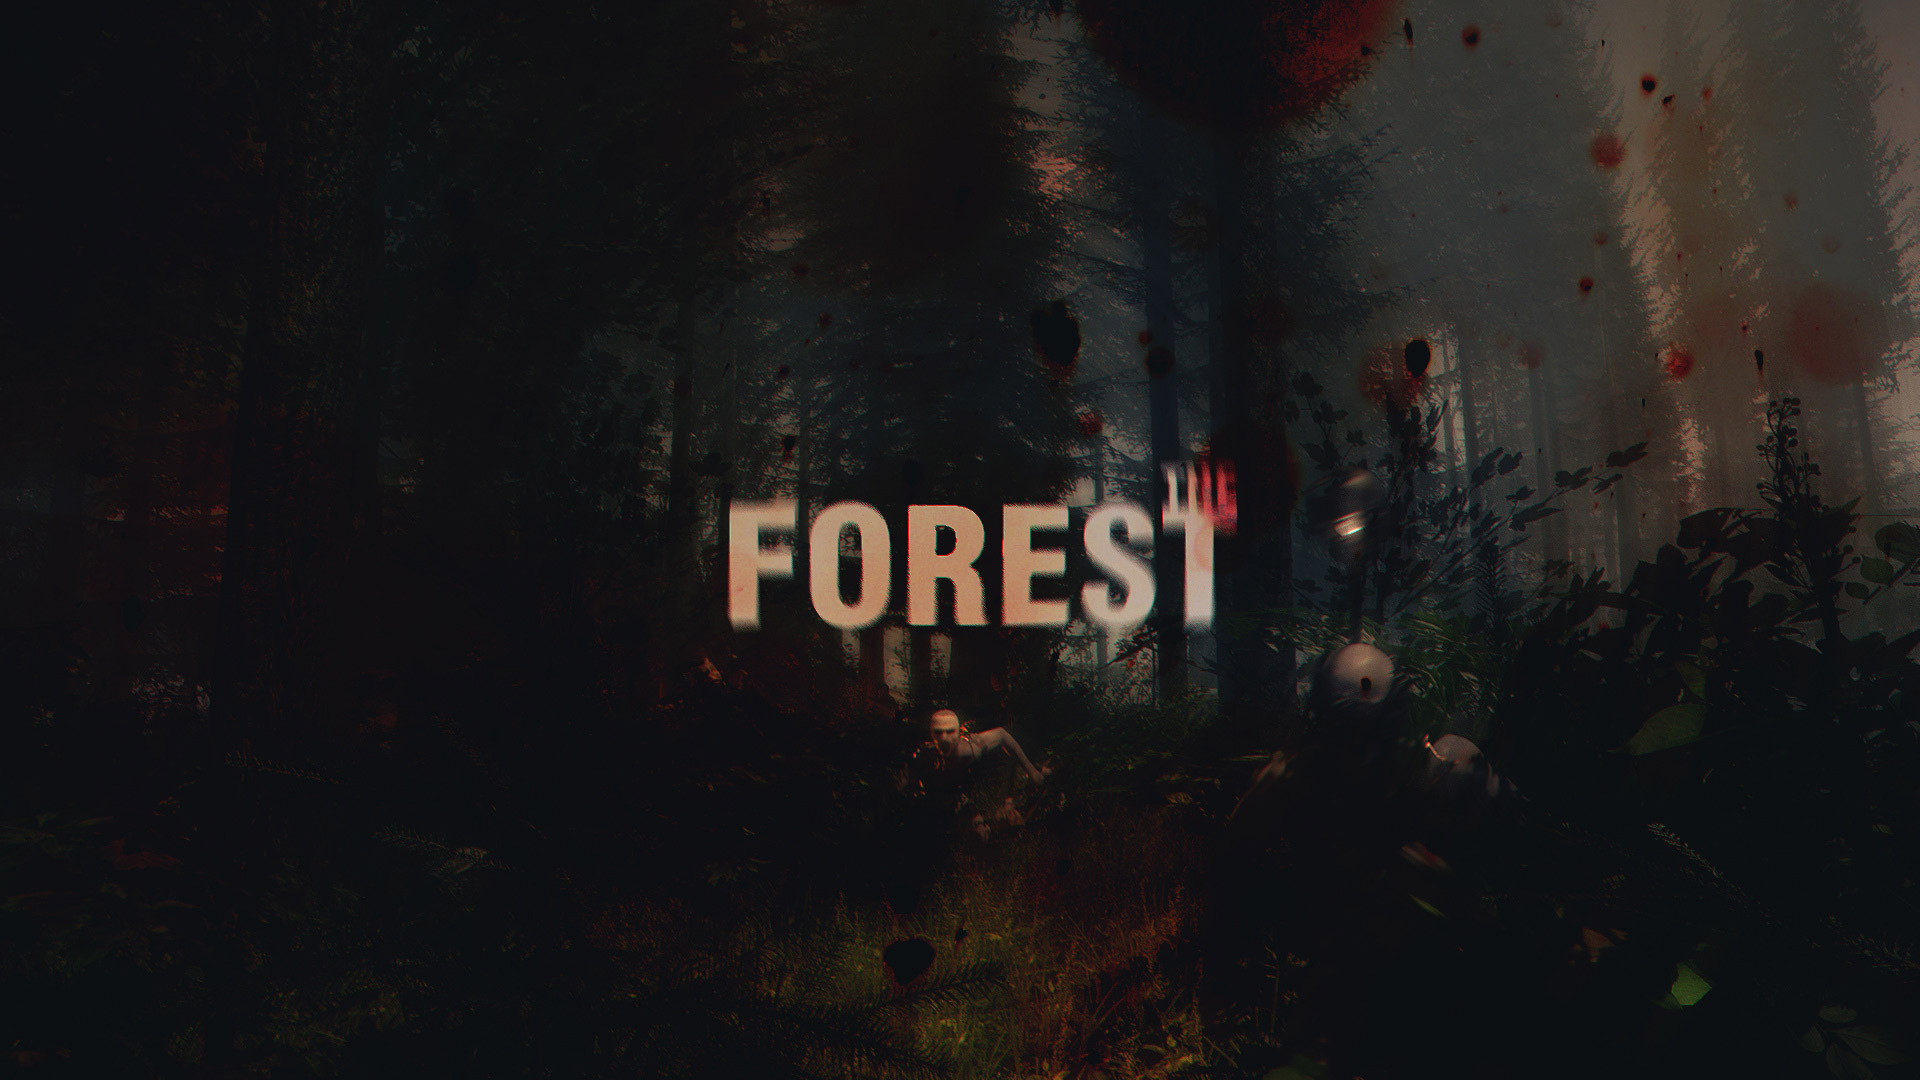 Free The Forest Wallpaper in 1920x1080